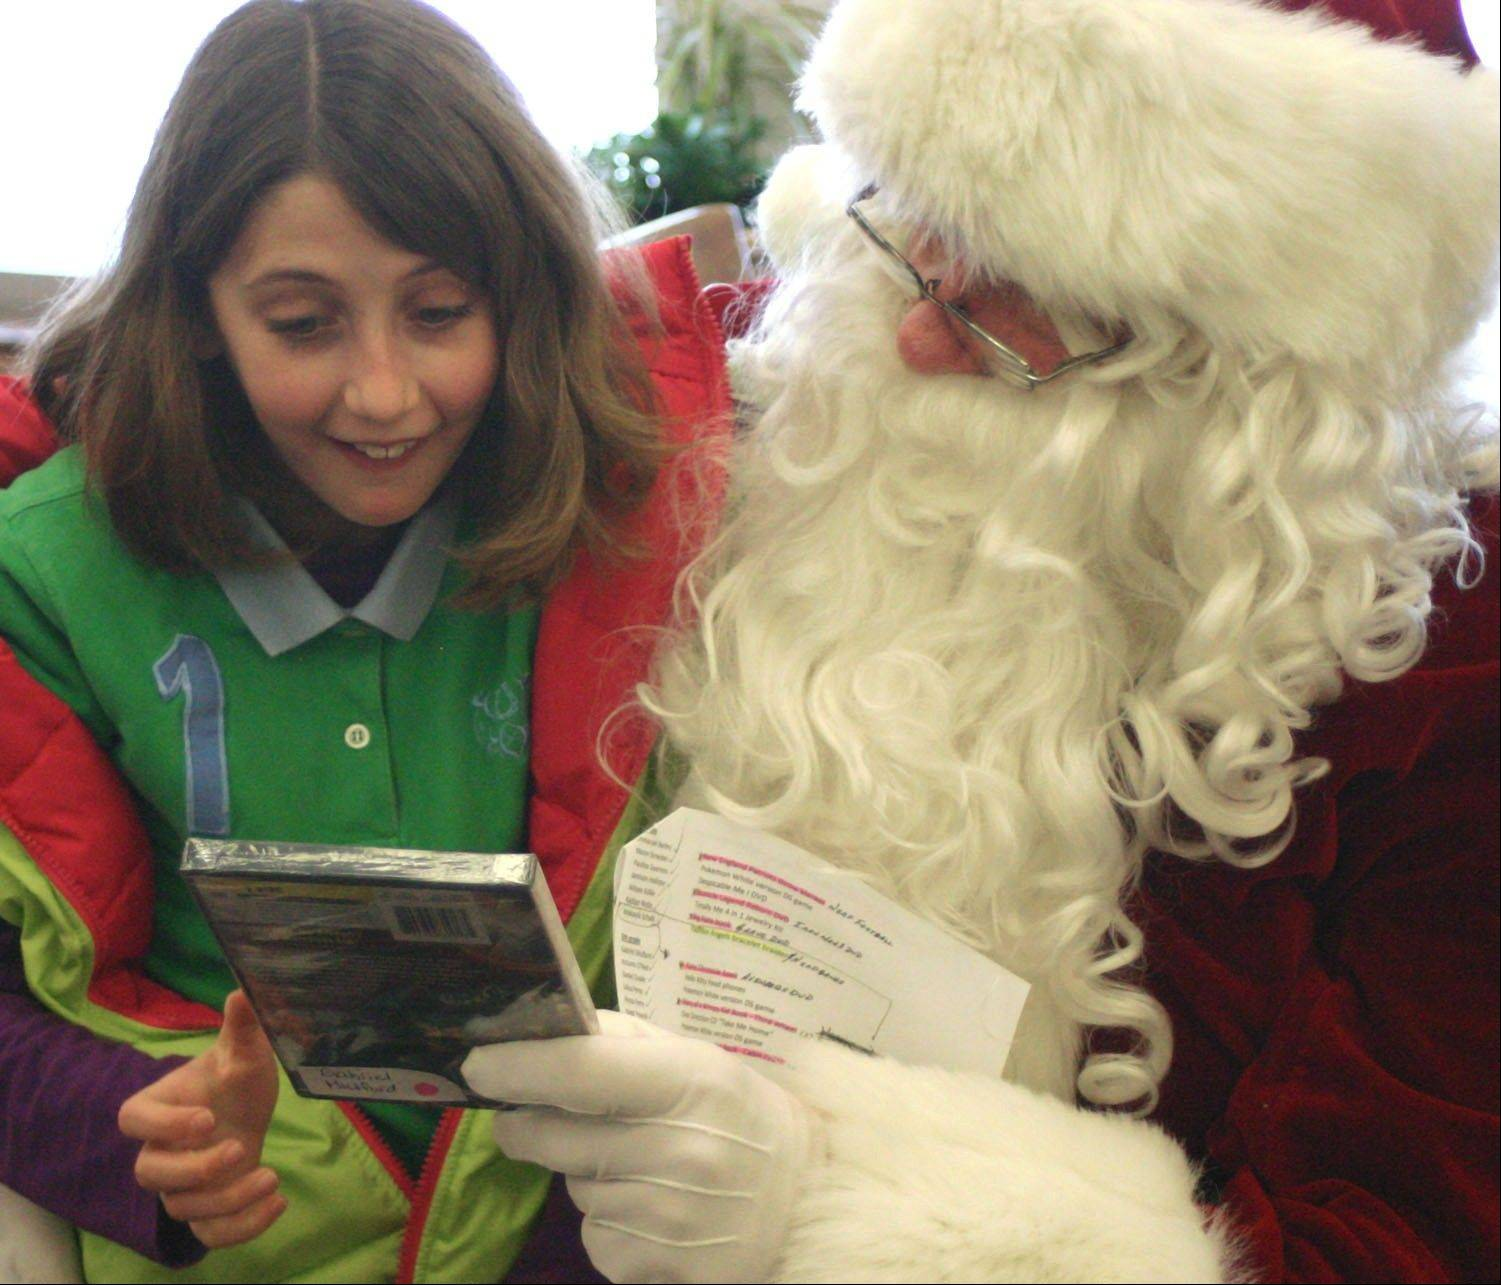 Mooseheart fifth-grader Gabriele Mulford's eyes light up when she receives a DVD from Santa Claus.